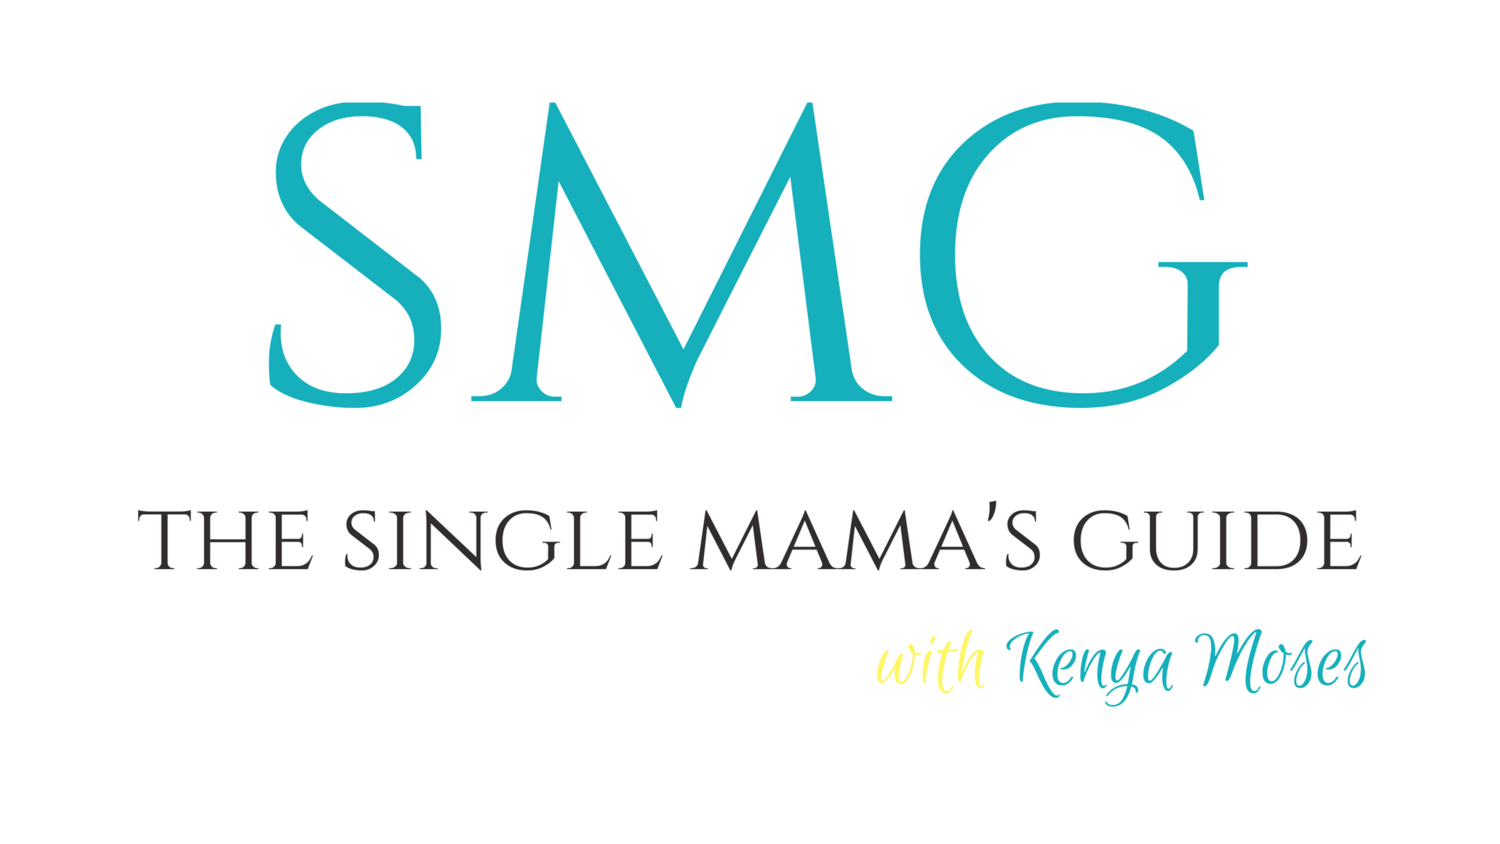 The Single Mama's Guide